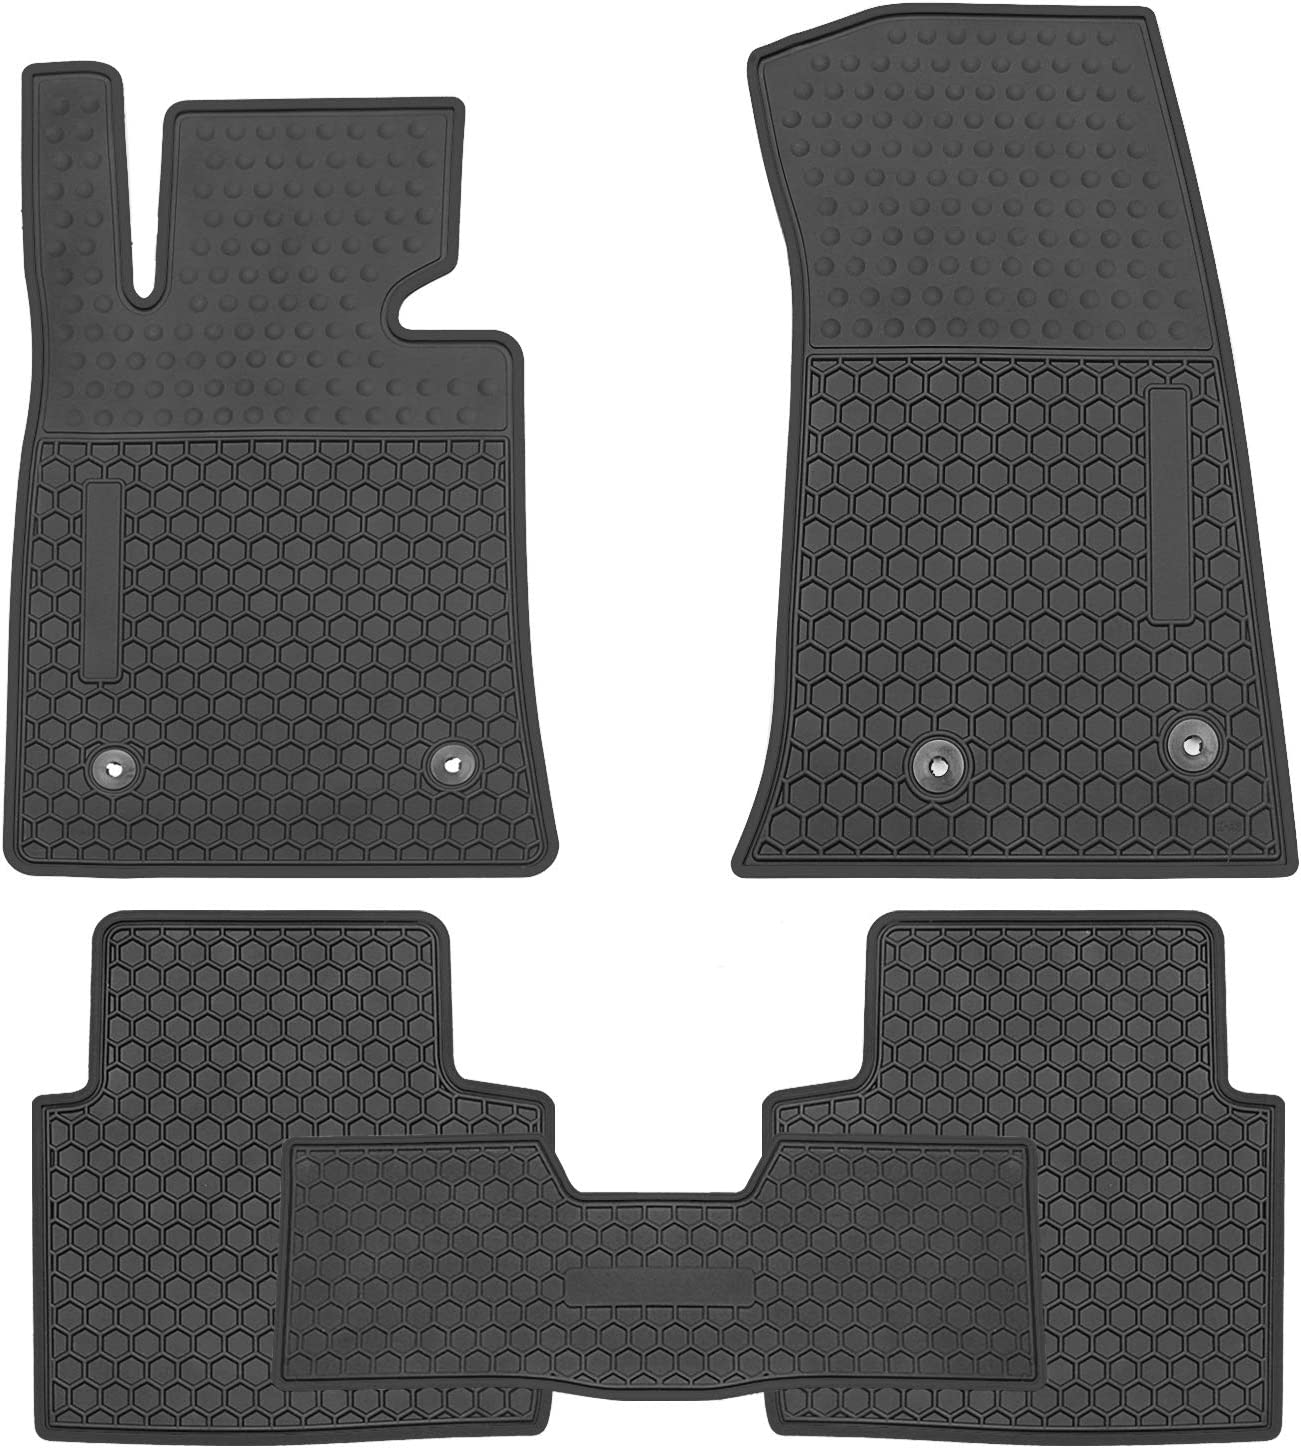 San Auto Car Floor Mat Rubber Custom Fit for Cadillac ATS-L 2018 2017 2016 2015 2014 2013 2007-2012 Full Black Auto Floor Liners All Weather Heavy Duty Odorless